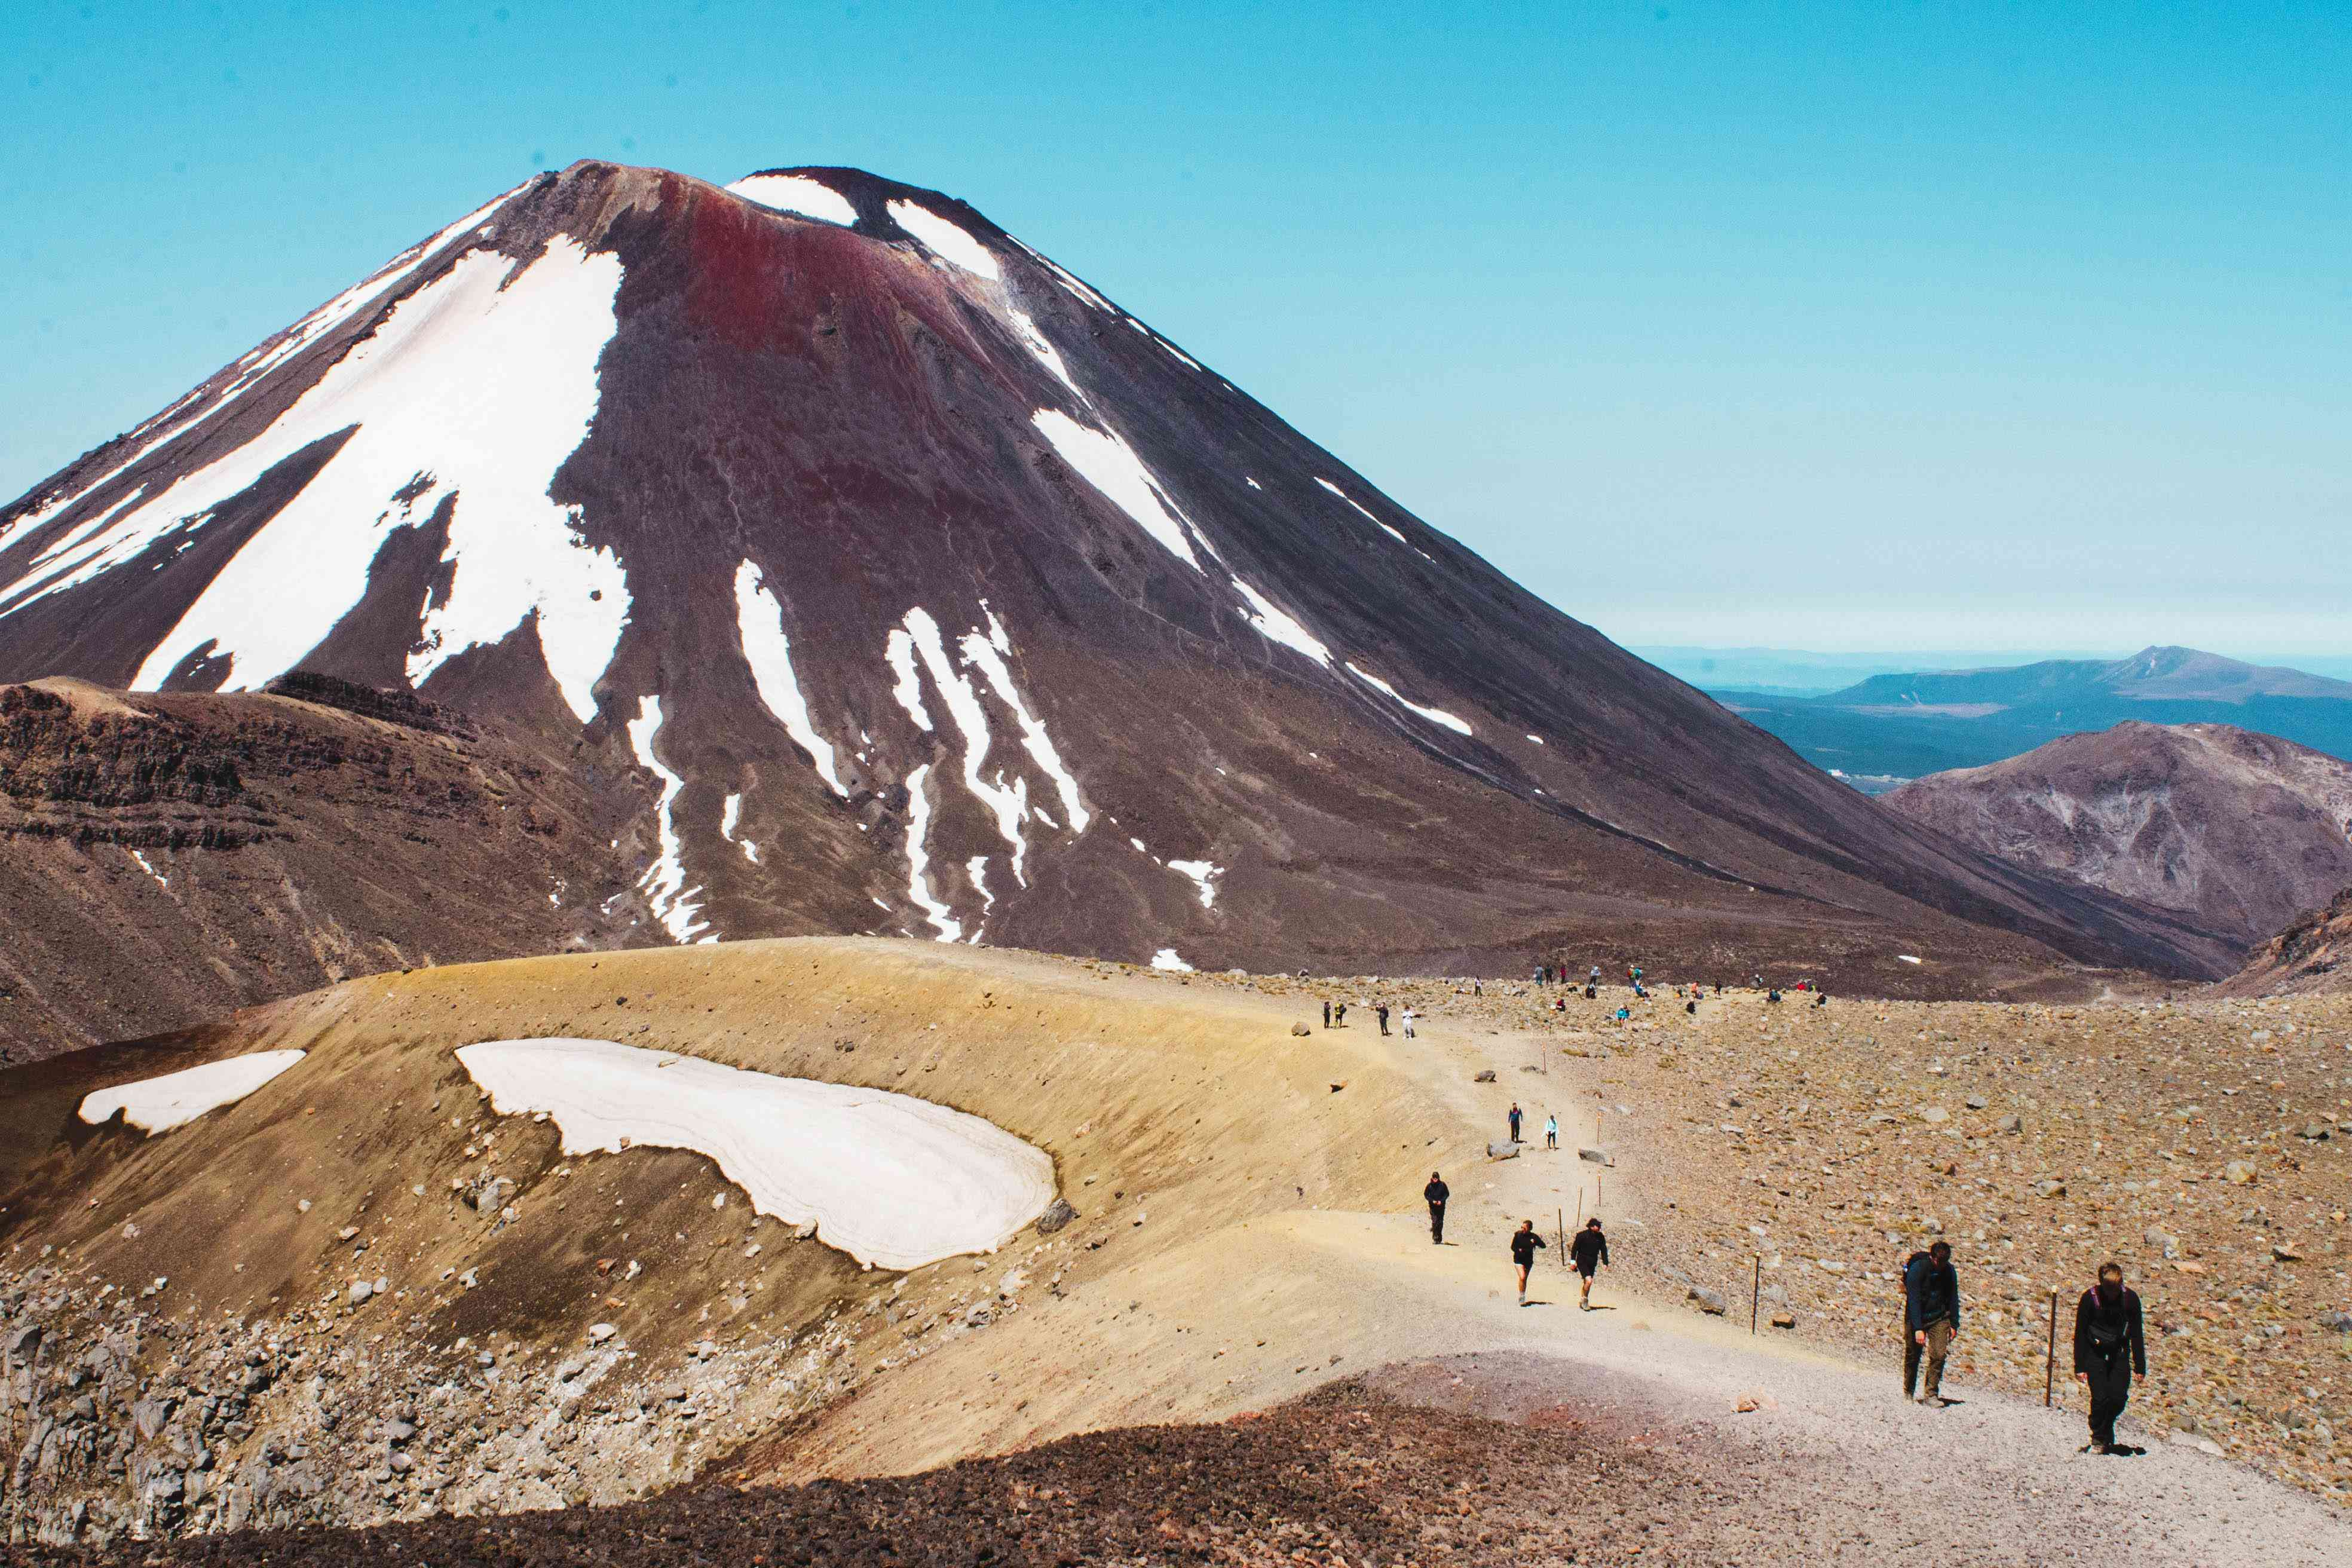 People hiking a path from the mountain in Tongariro